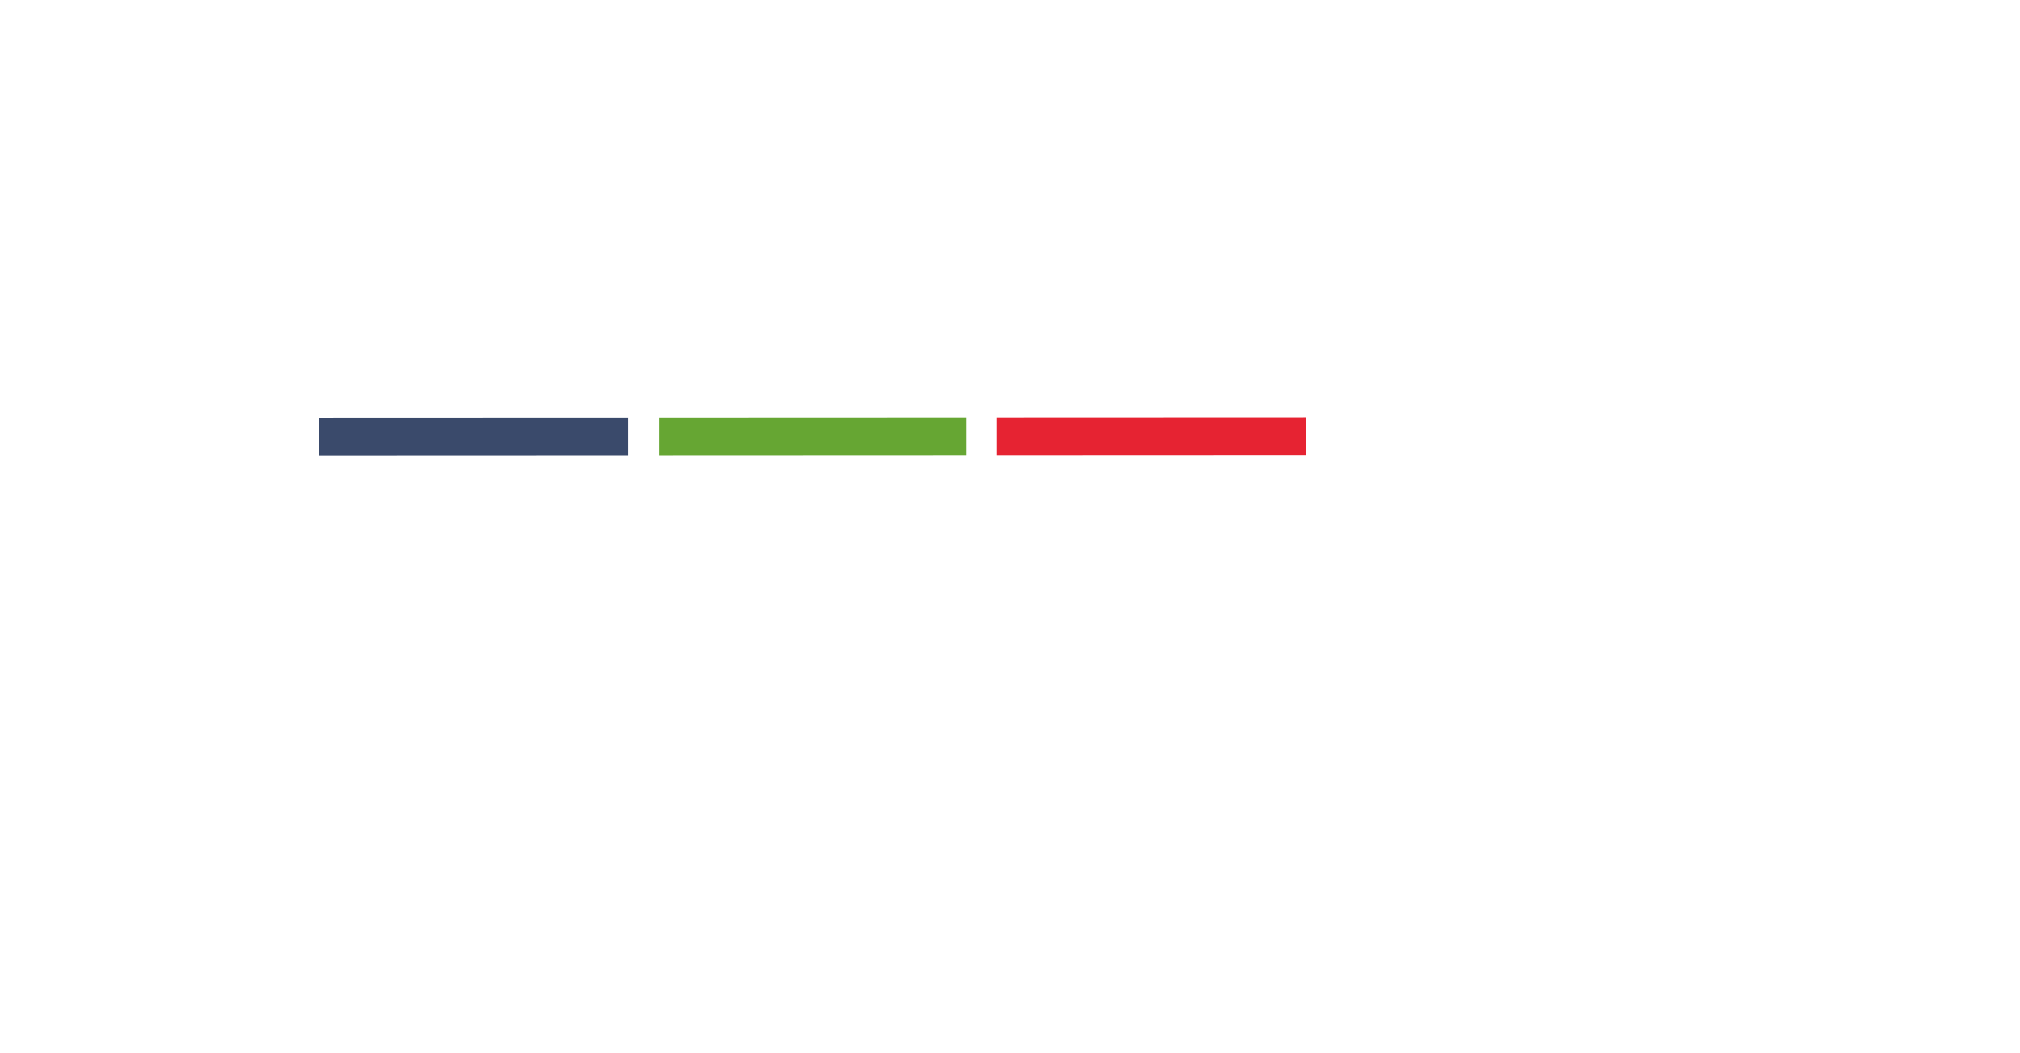 for-cyclists-by-cyclists_white_two_line.png